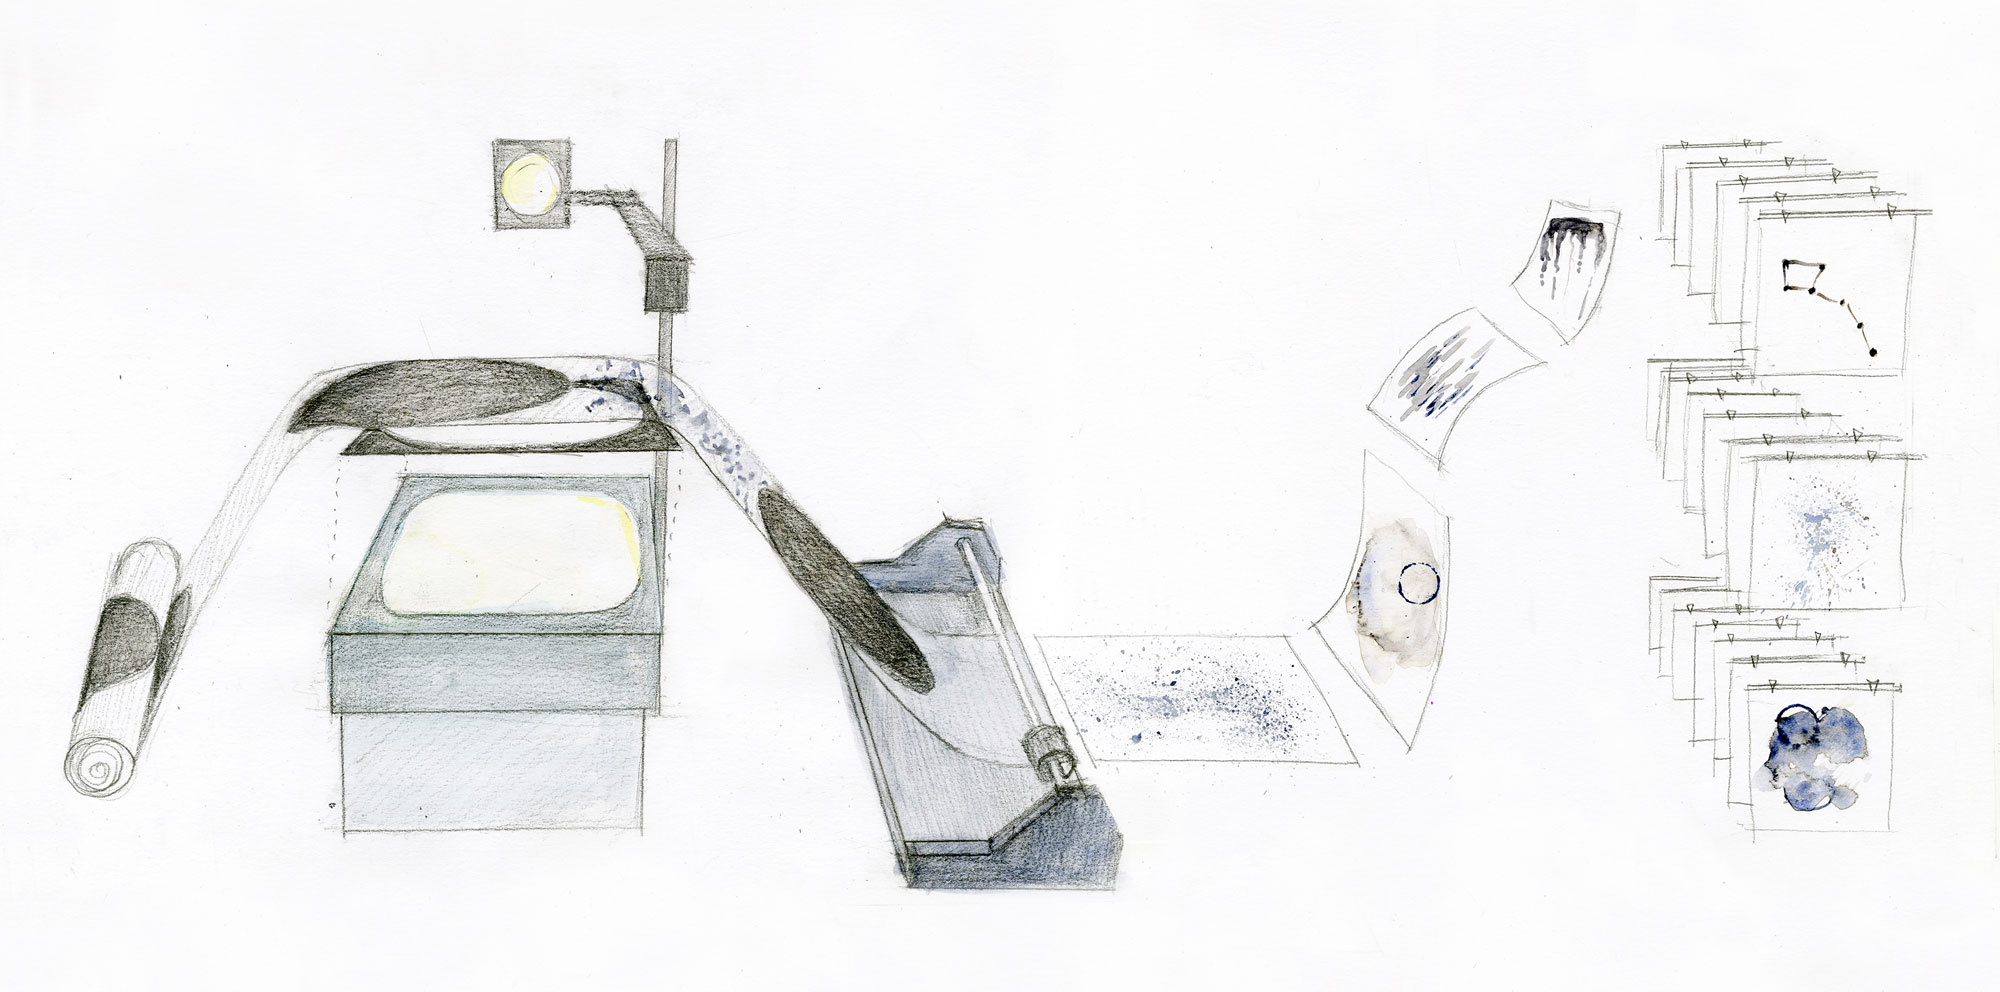 System developed for analog projections using a vintage overhead projector and various materials including ink painting on water.